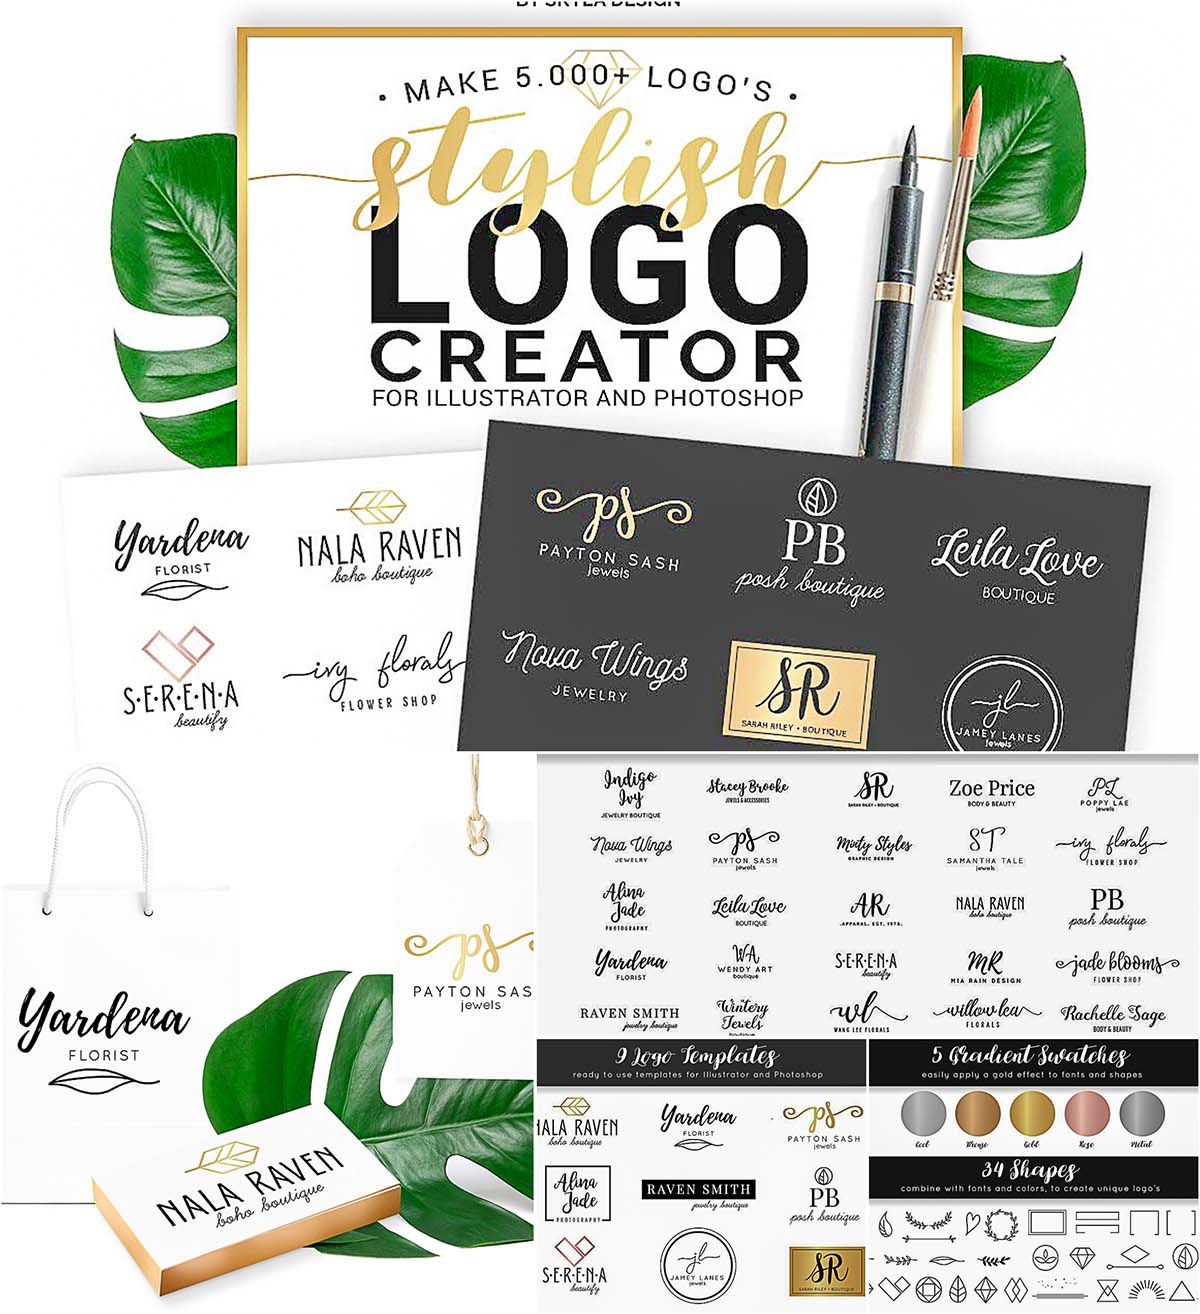 Stylish logo creation kit